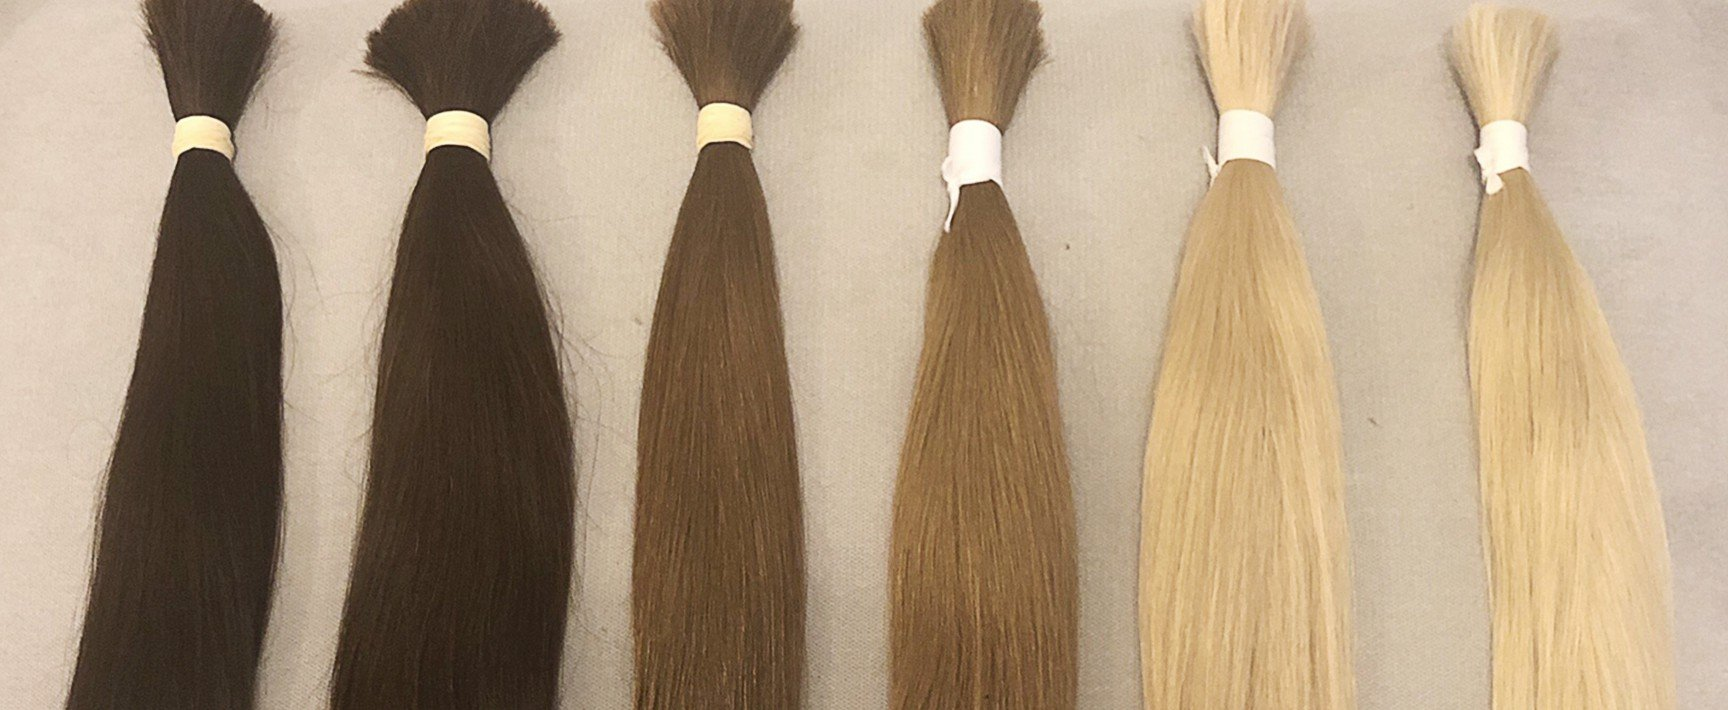 Selection of six colour bundles of hair